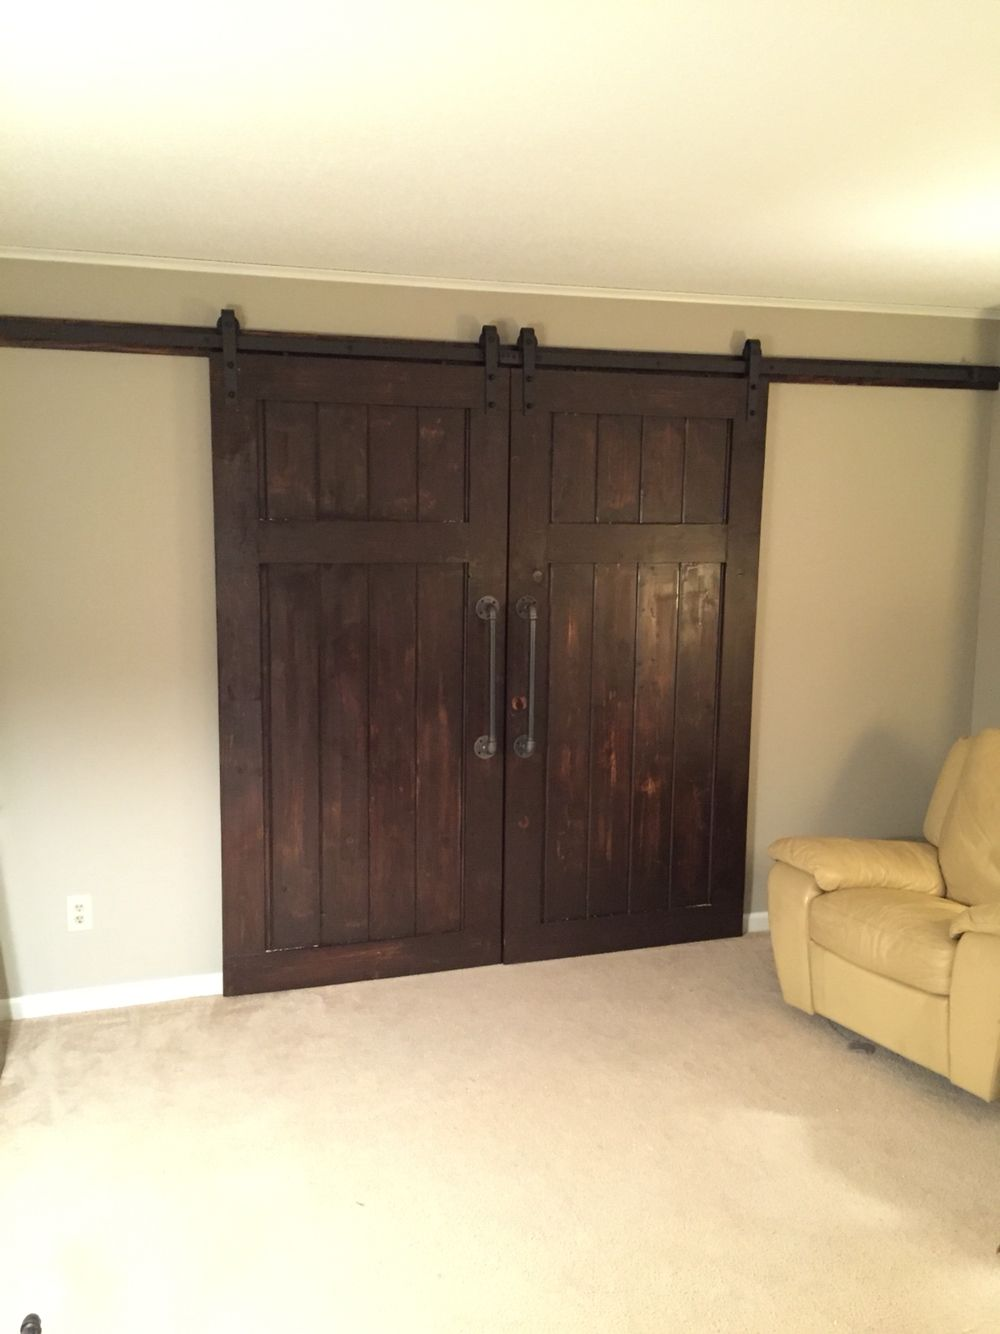 Barn Doors Made Of 1x8 Car Siding With A 1x6 Frame On The